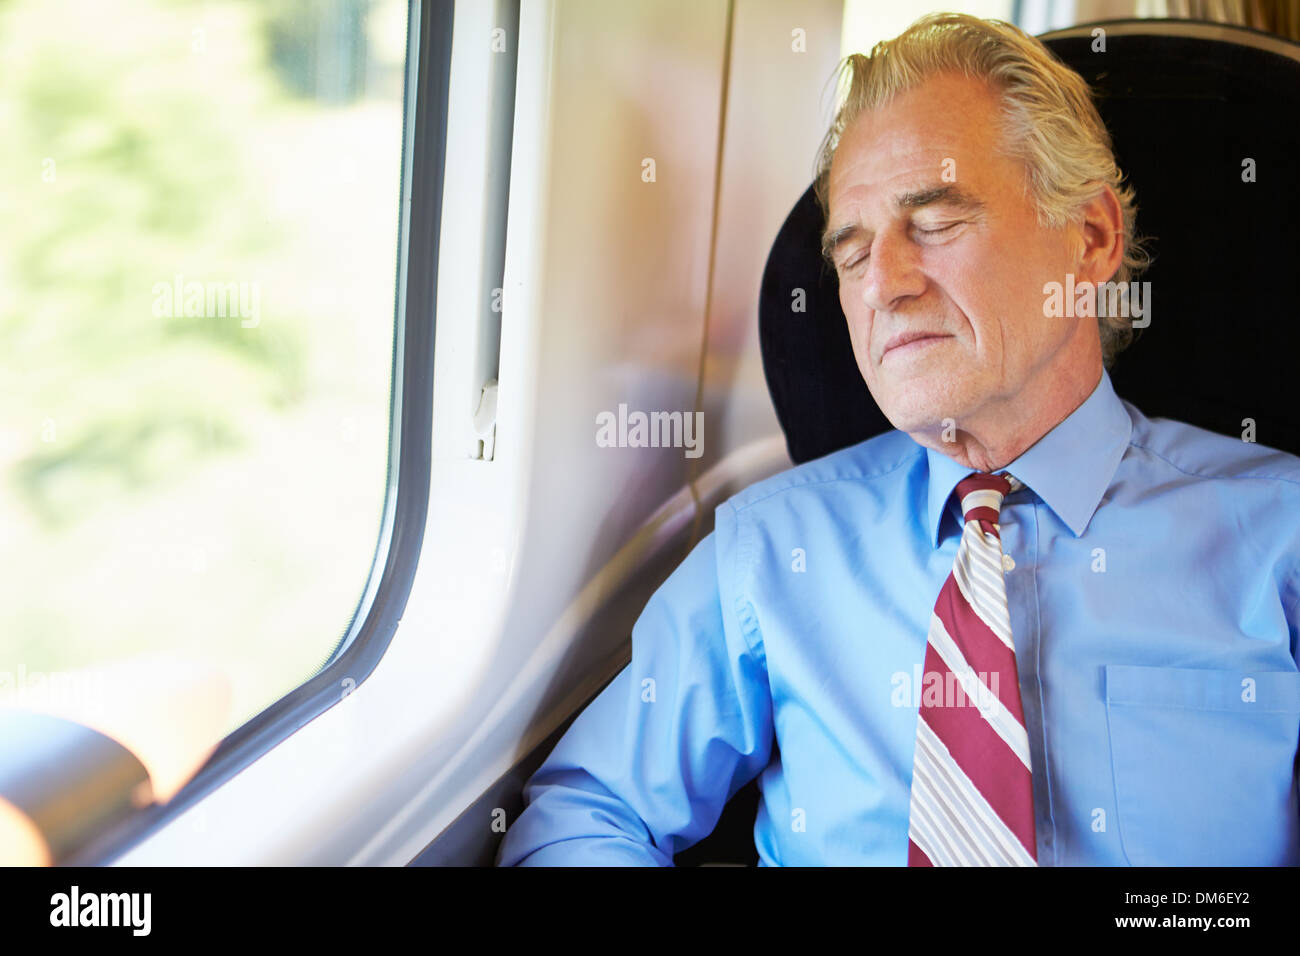 Businessman Resting On Train - Stock Image